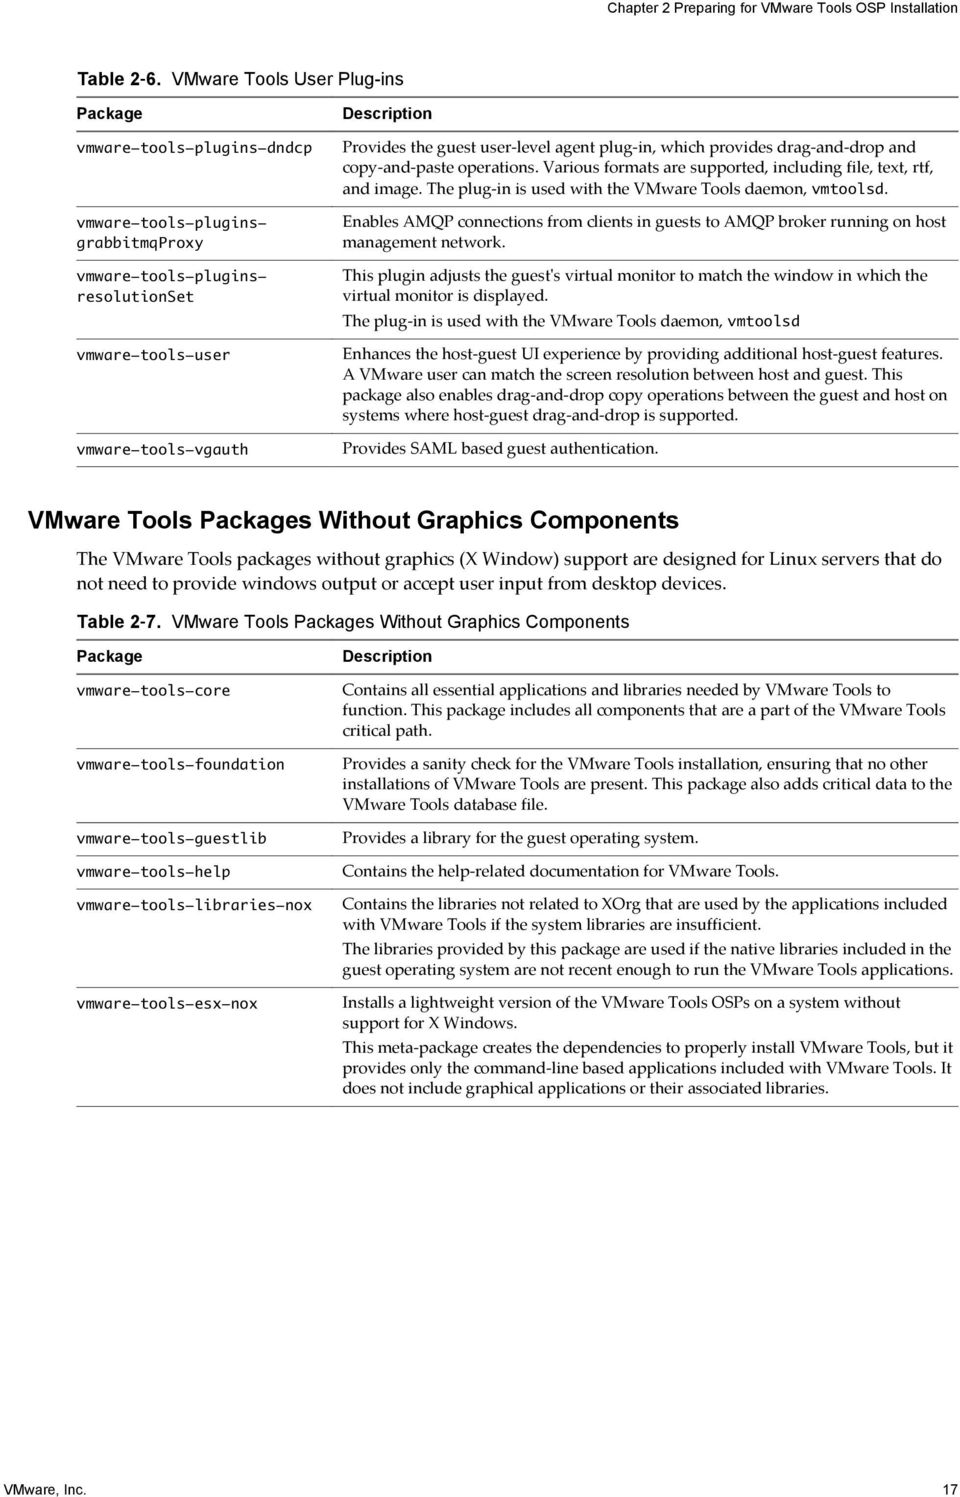 vmware-tools-user vmware-tools-vgauth Description vmtoolsd vmtoolsd VMware Tools Packages Without Graphics Components Table 2 7.